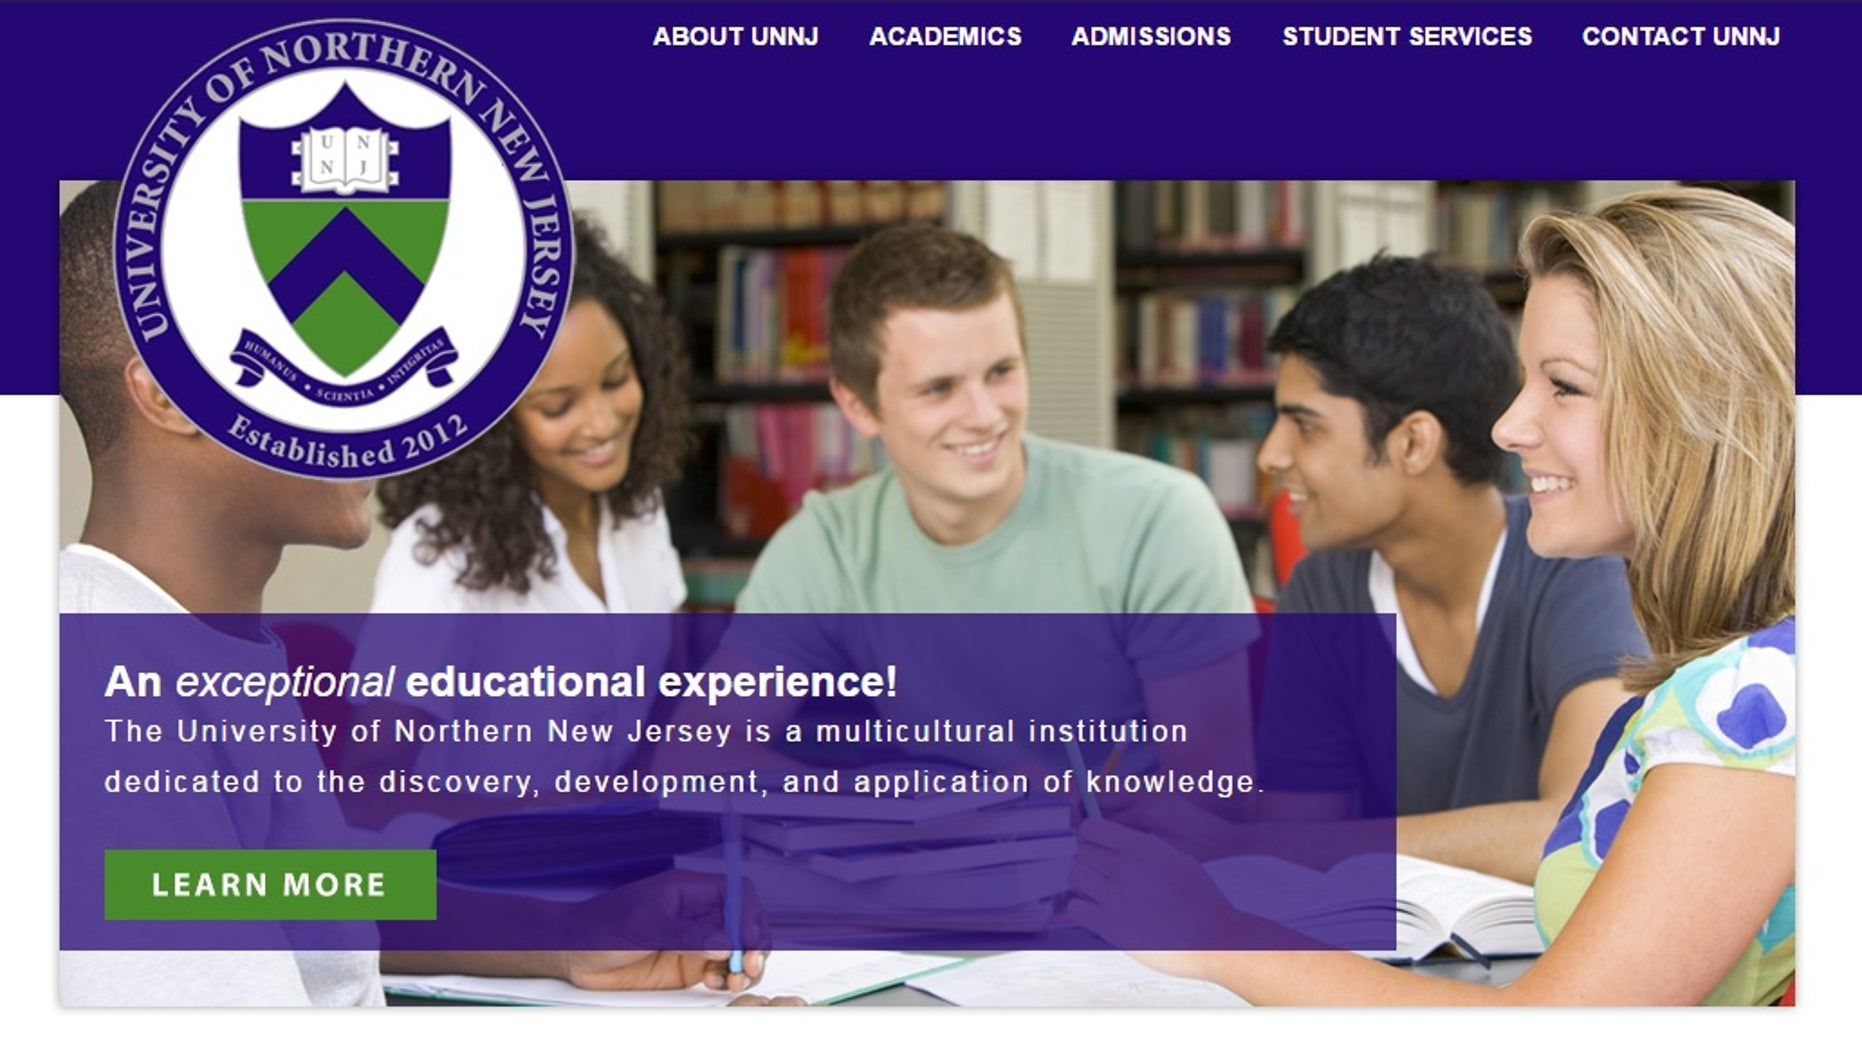 A screenshot from the University of Northern New Jersey's website.